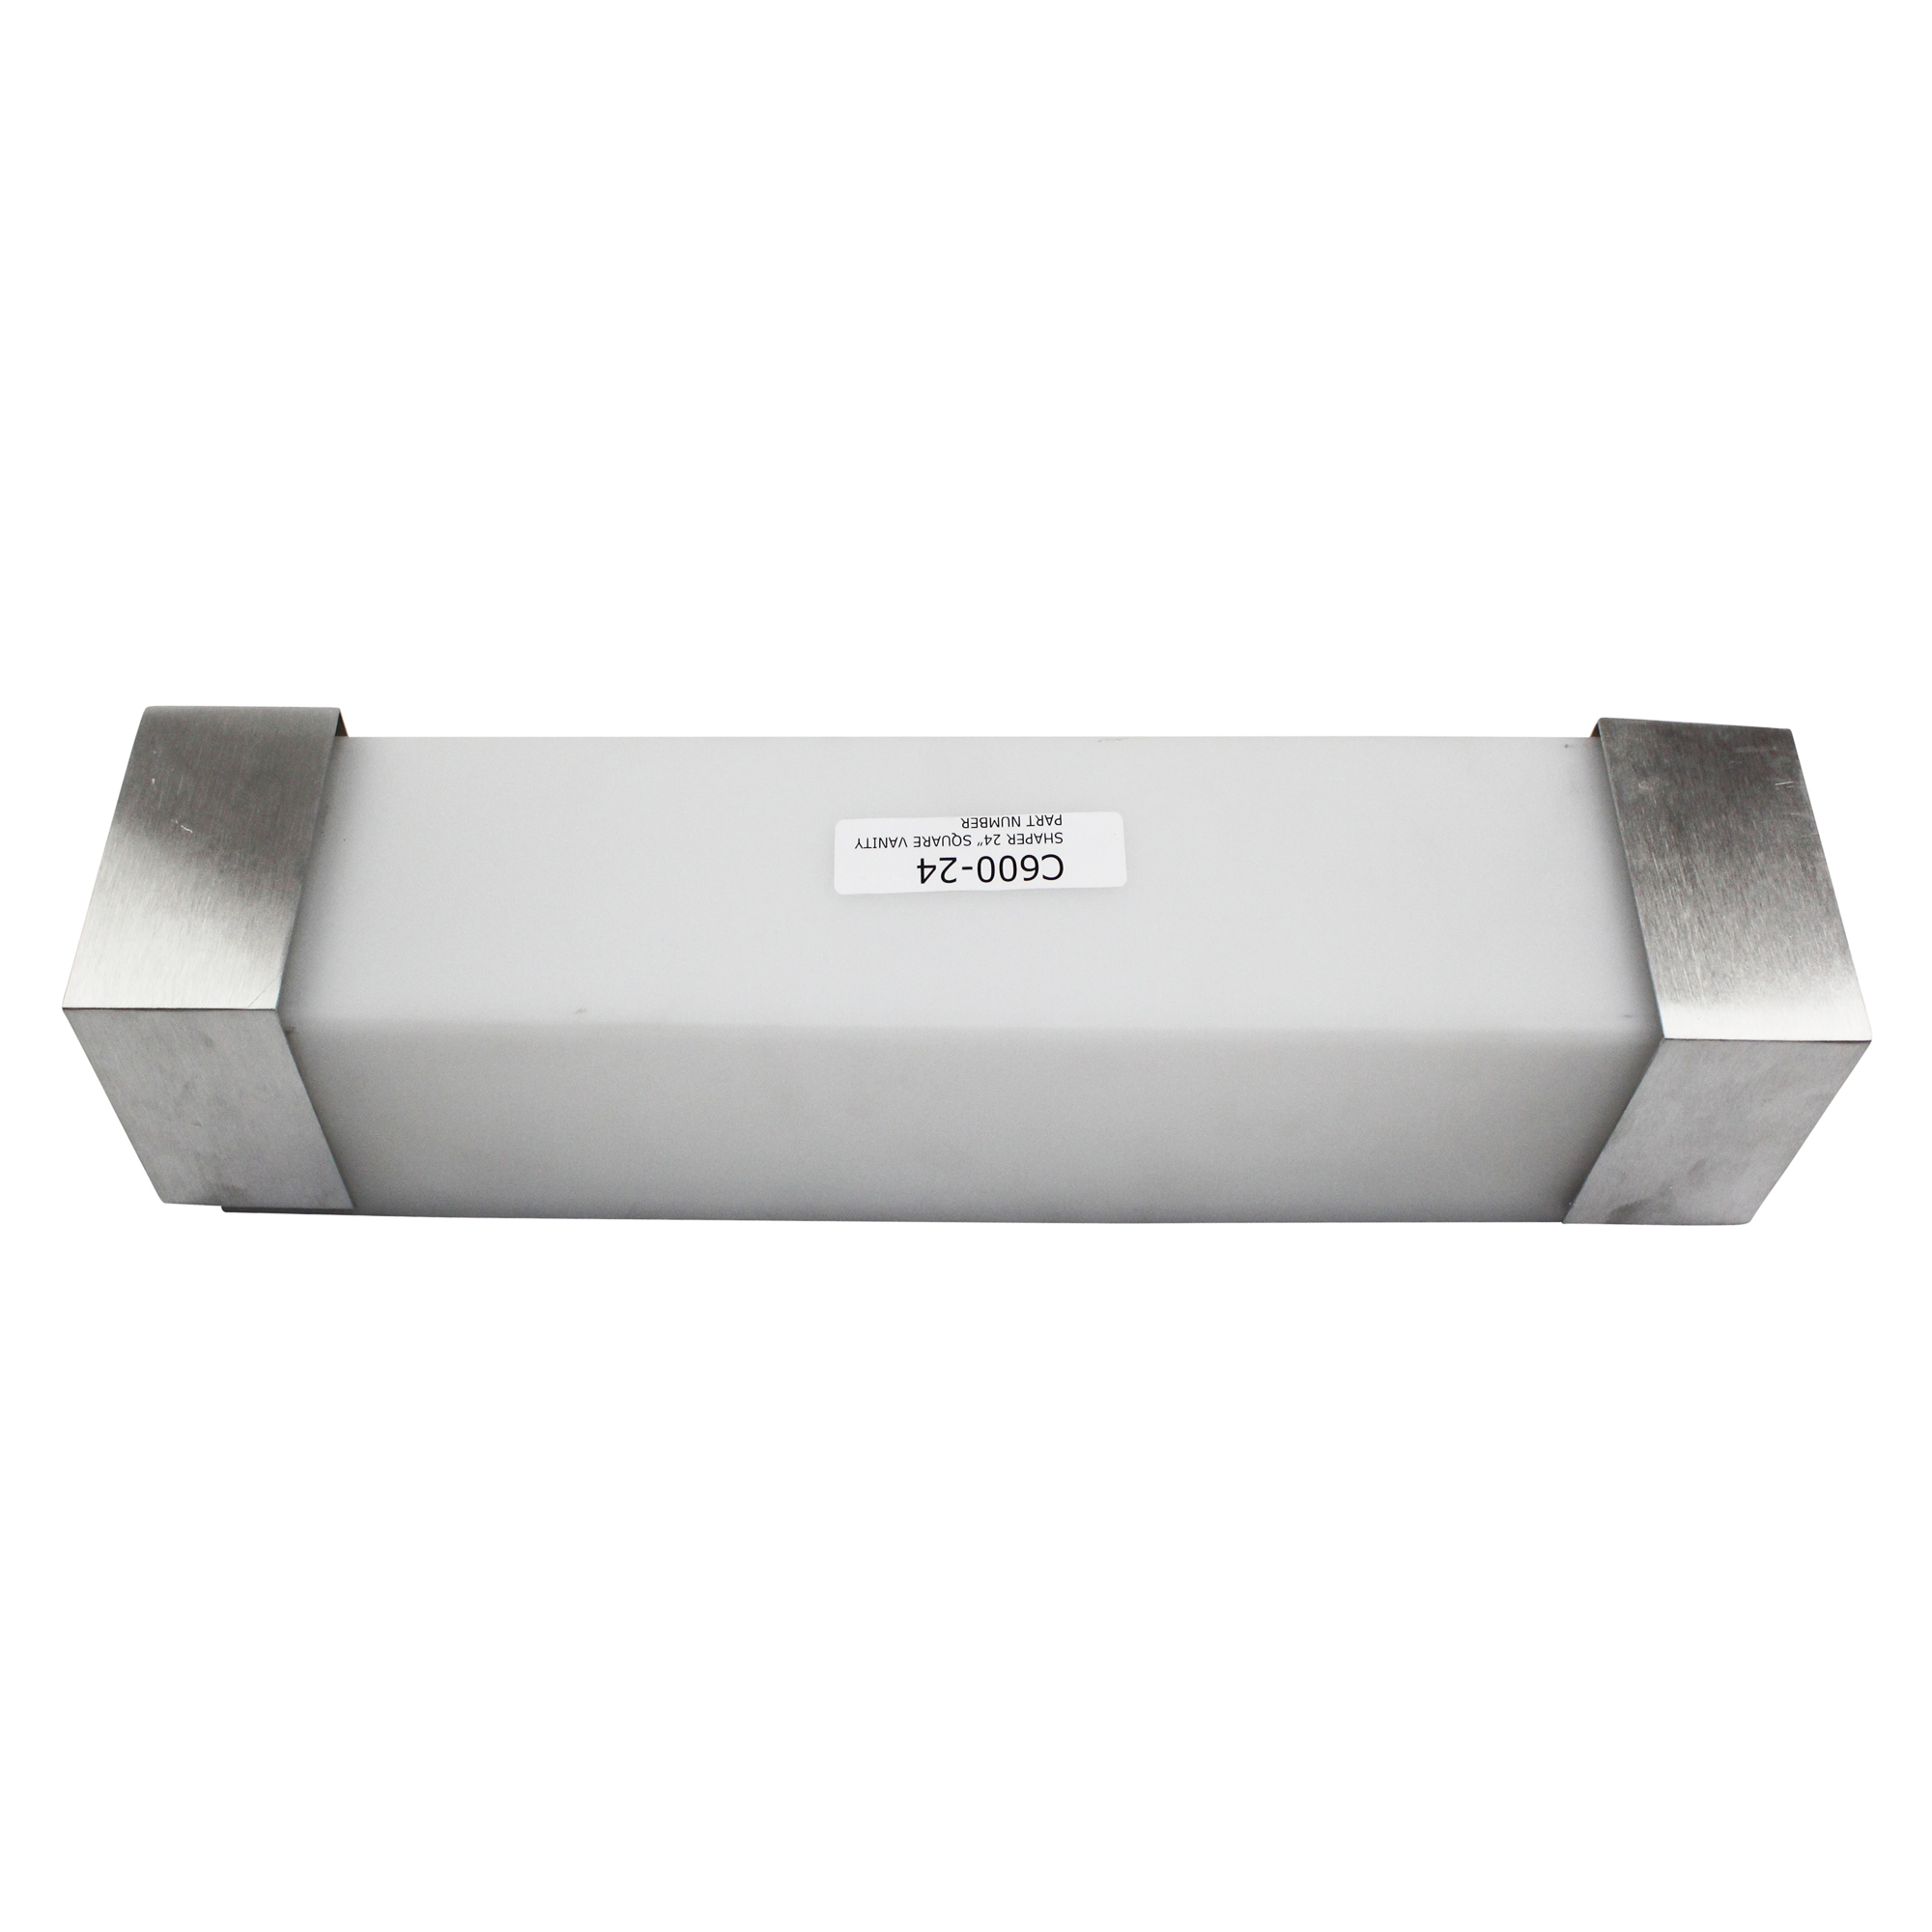 SHAPER 24 SQUARE INTERIOR WALL VANITY 600 24 BRUSHED NICKEL LUMINAIRE L